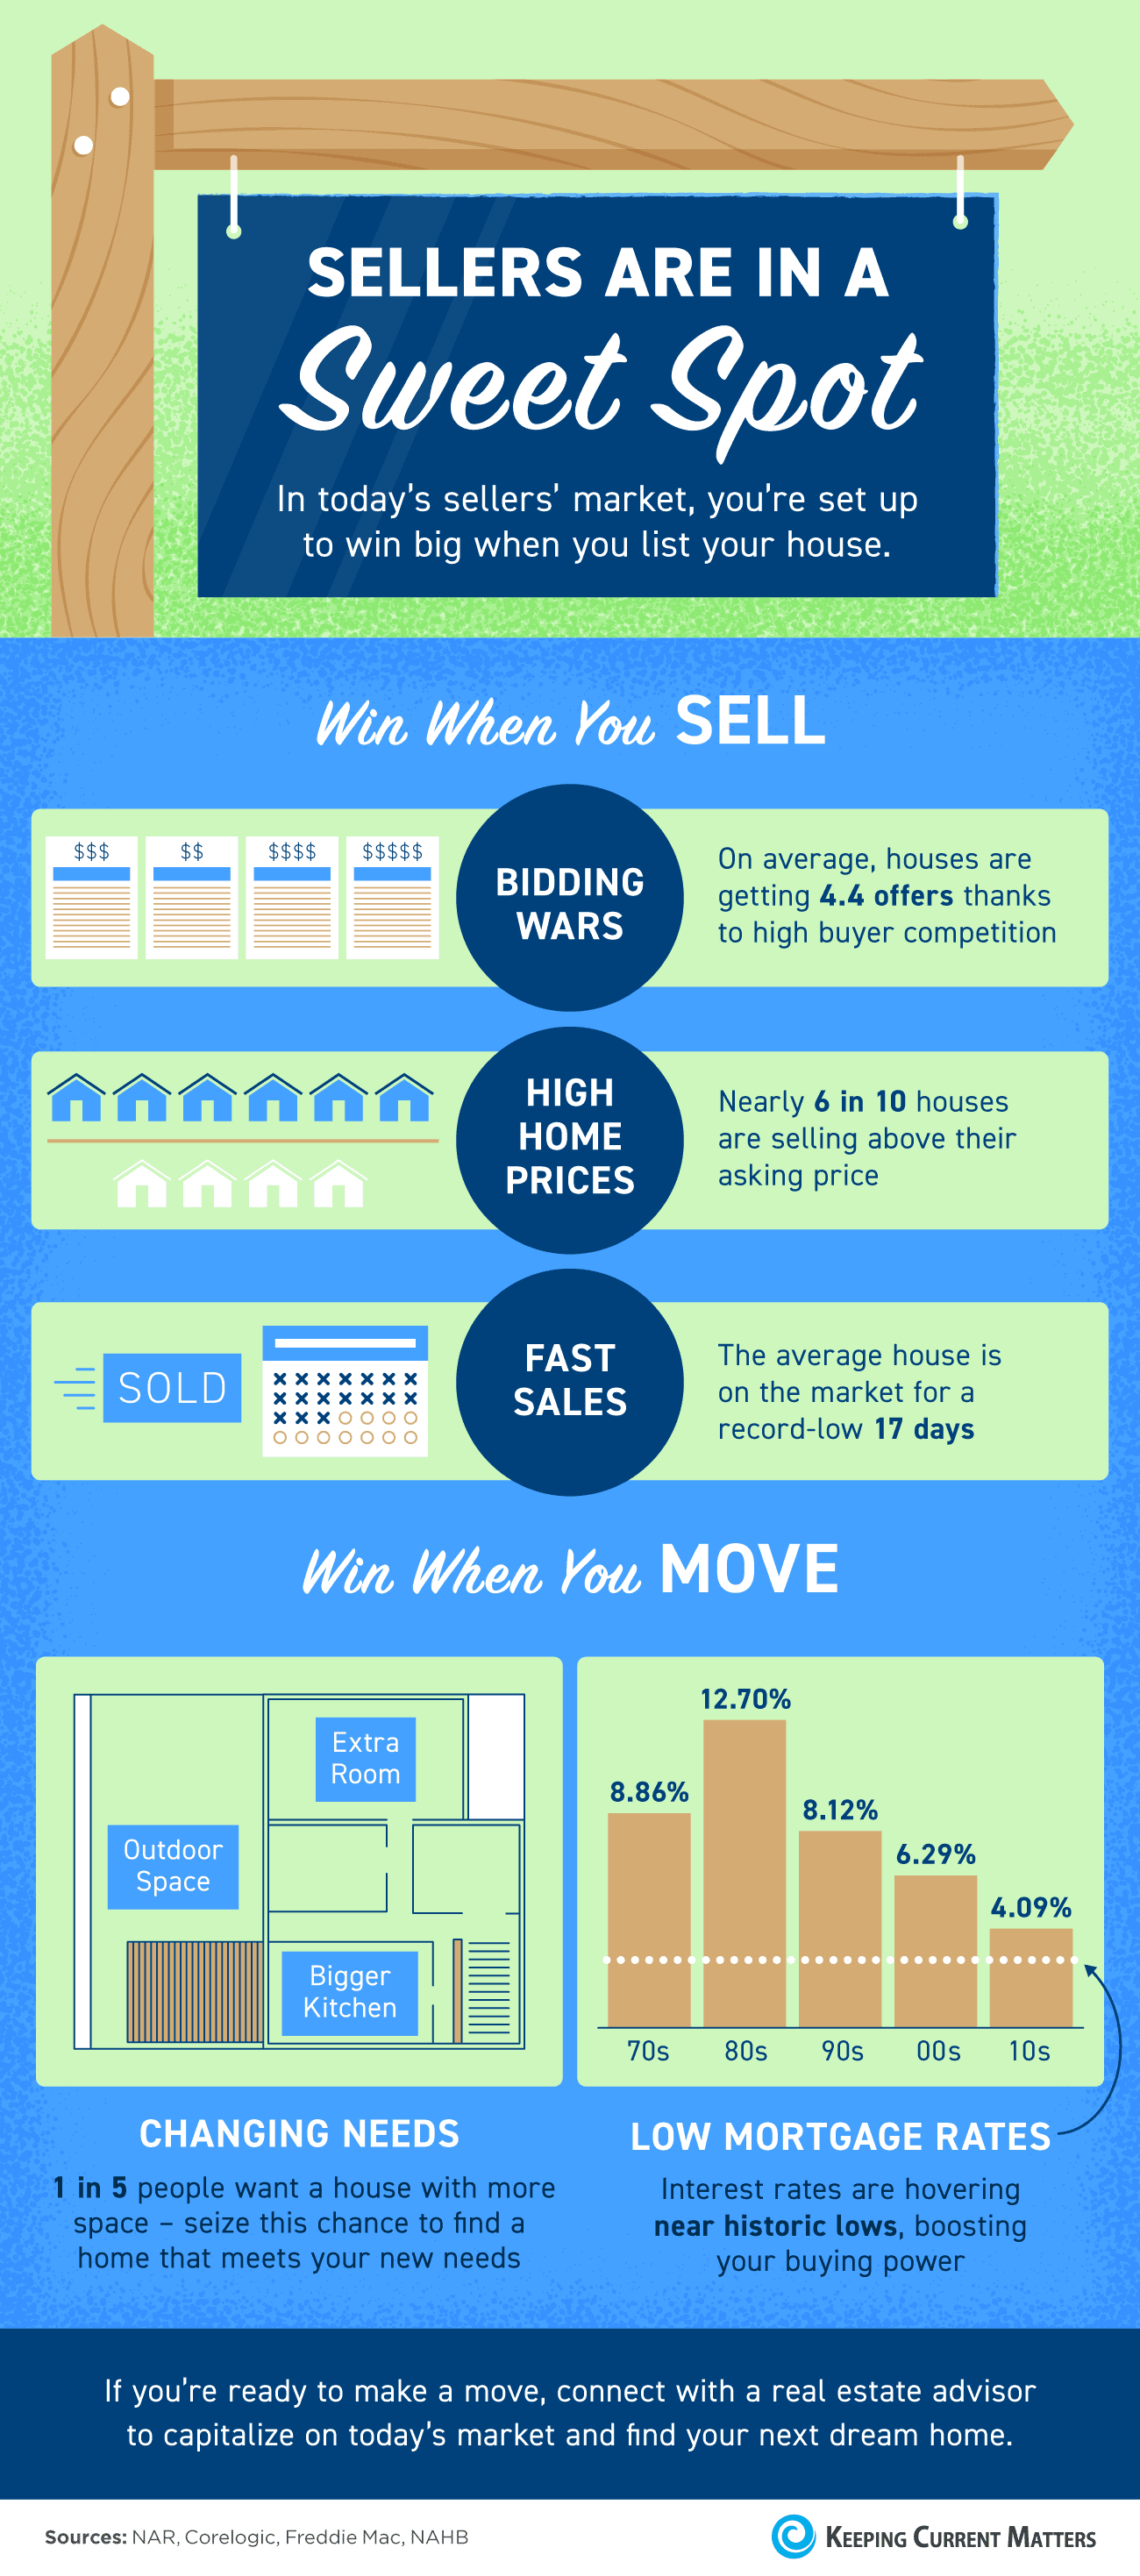 Sellers Are in a Sweet Spot [INFOGRAPHIC]   Keeping Current Matters